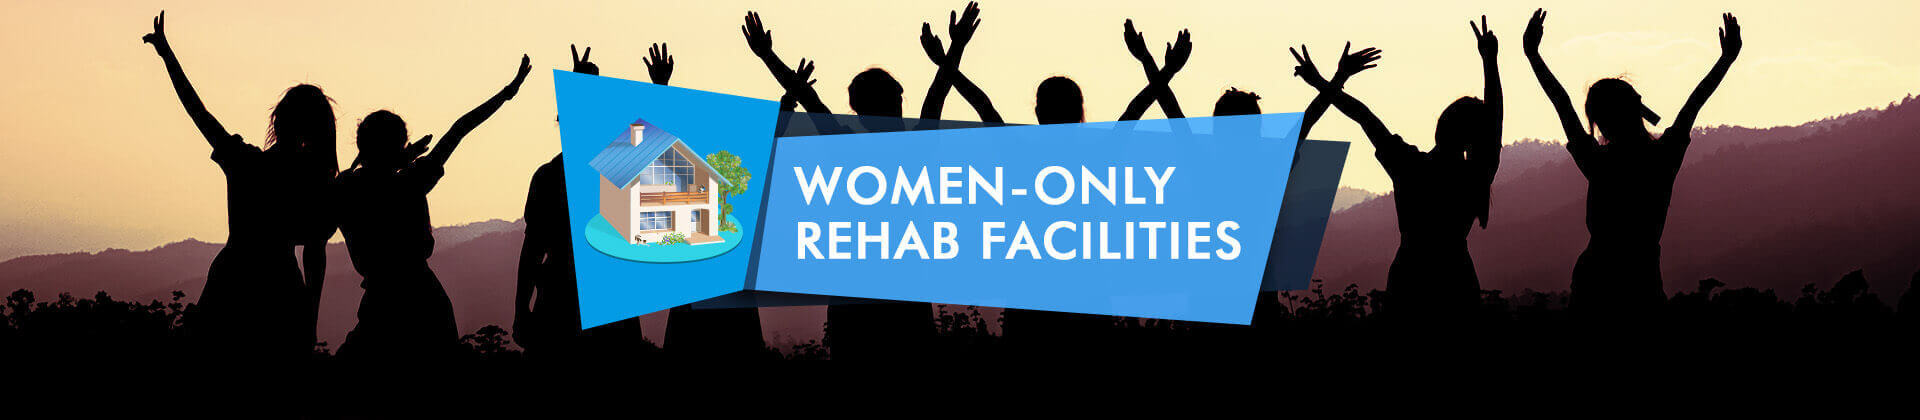 rehabilitation centers for women